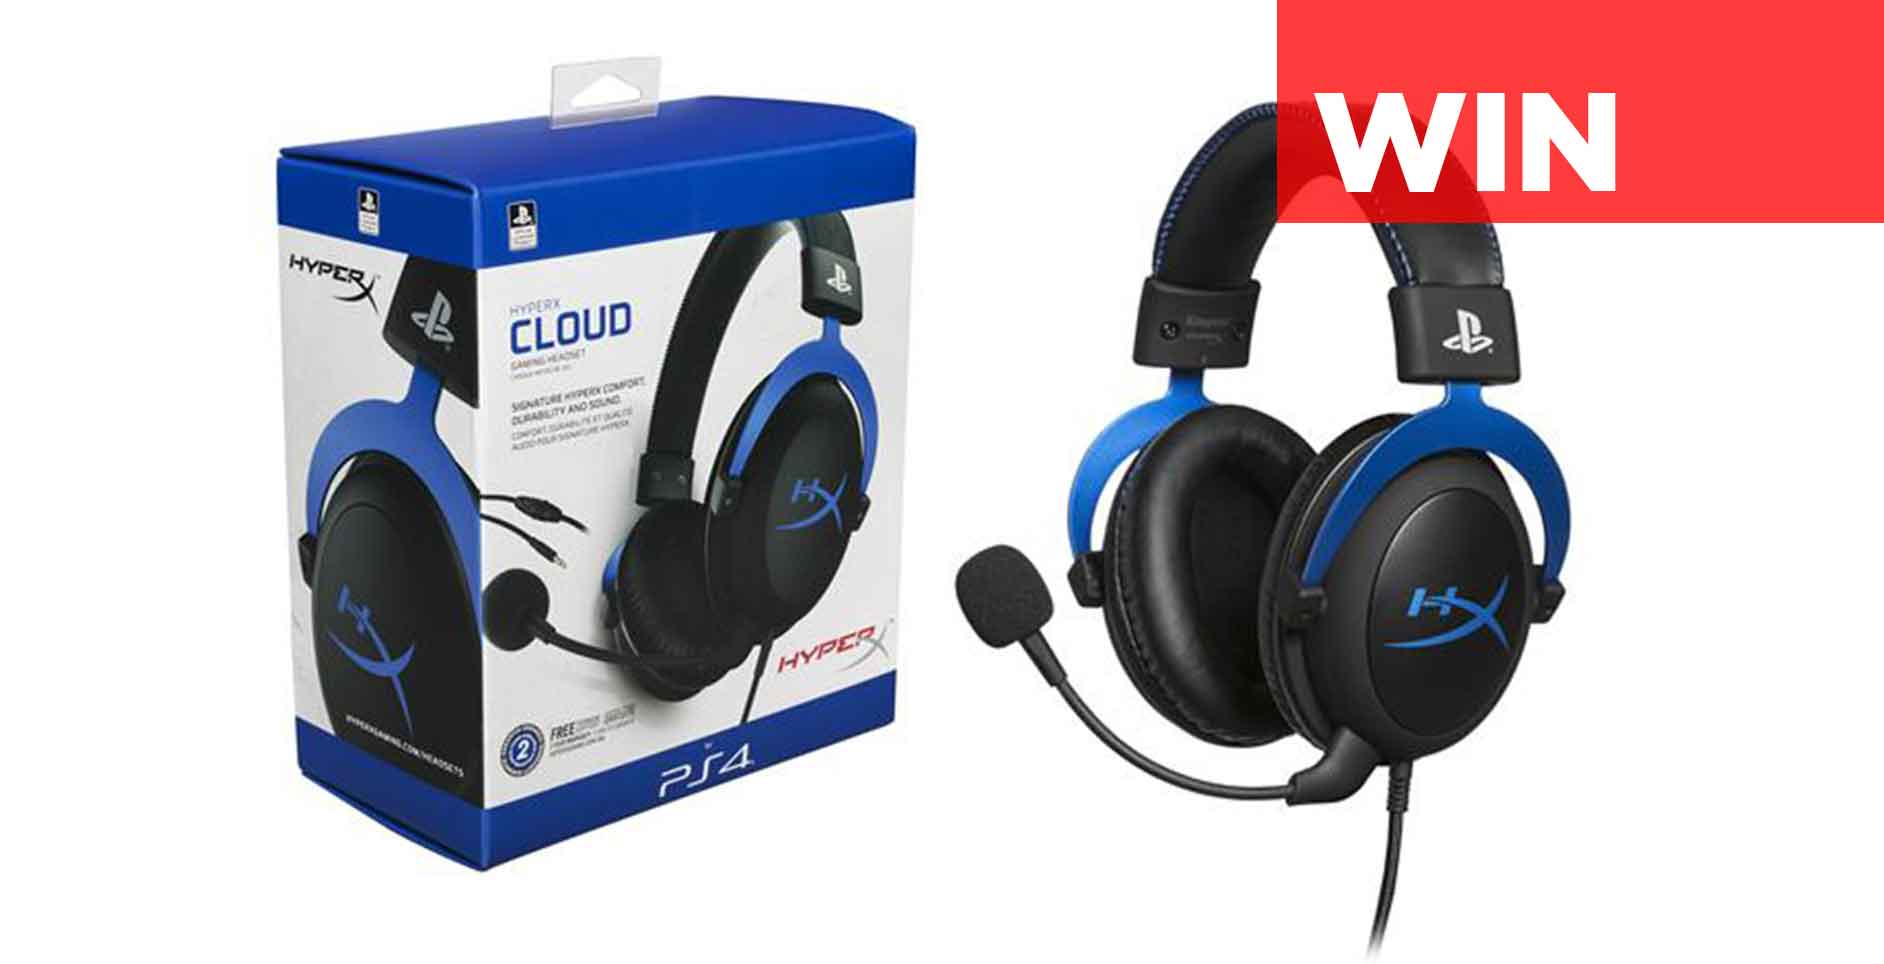 Win a HyperX Cloud Gaming Headset Giveaway Image